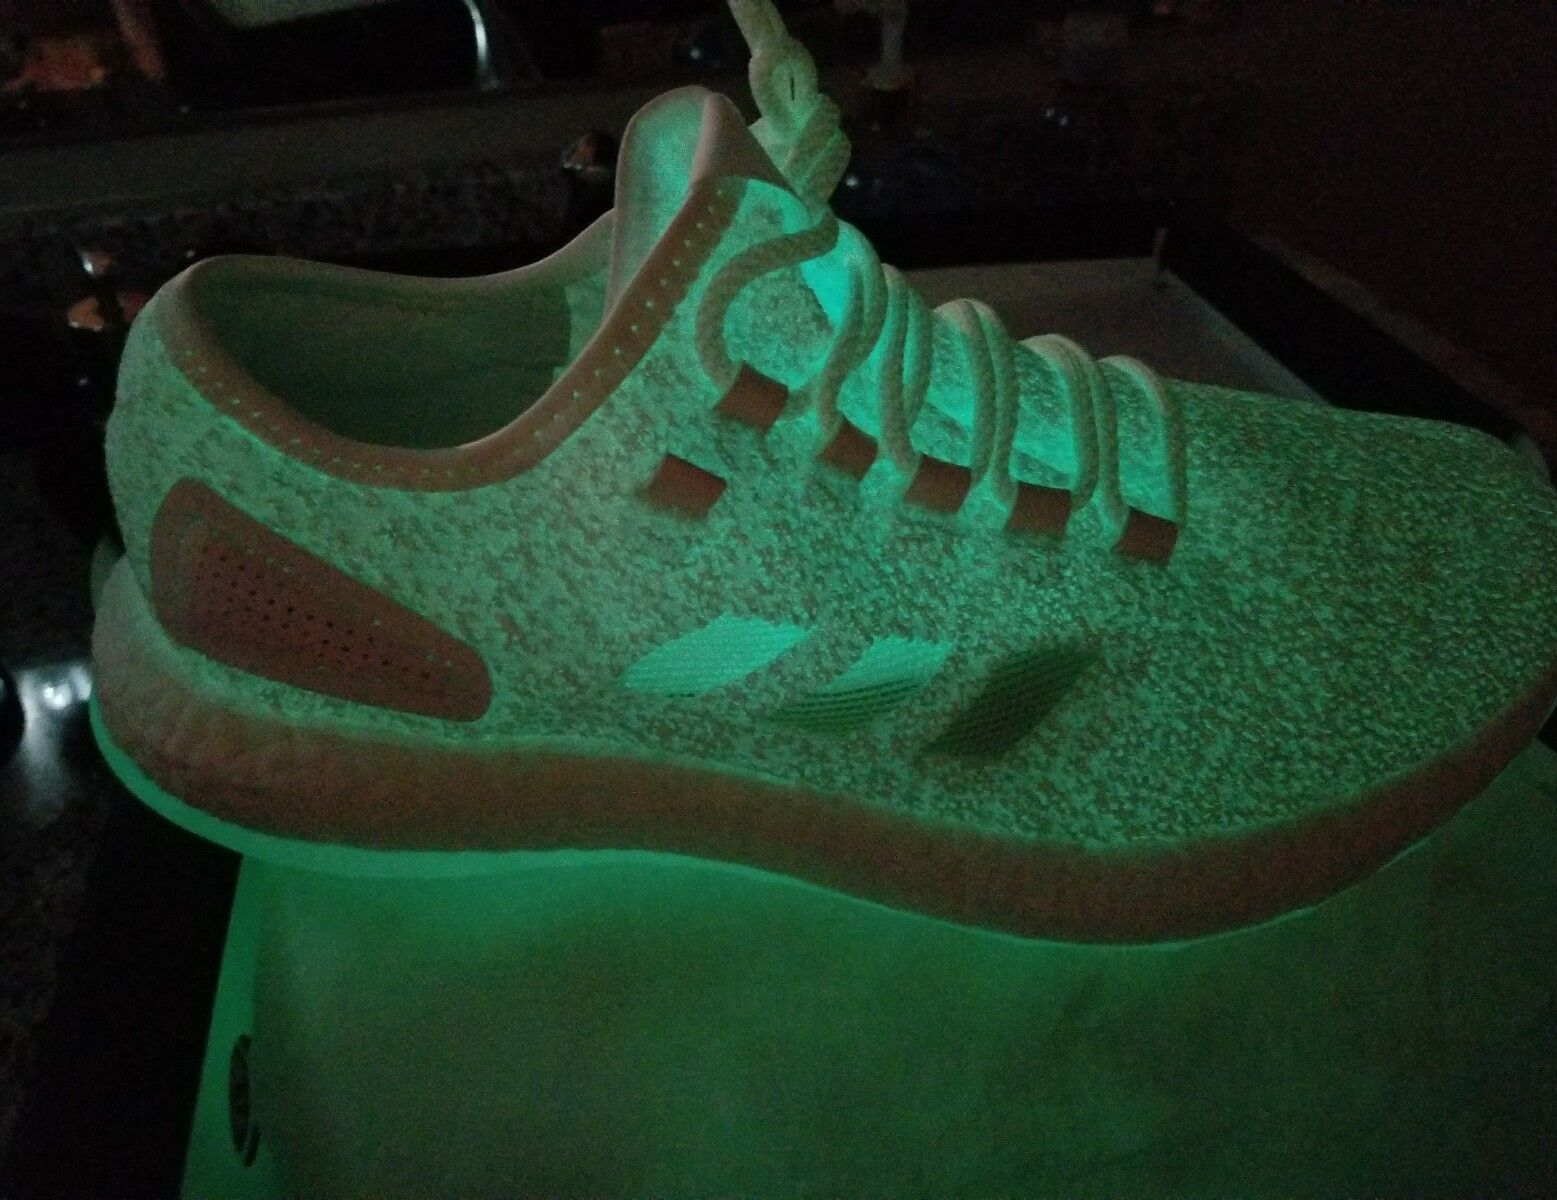 Adidas x Sneakerboy x Wish x Sneaker Exchange Pure Boost S.E. Glow in the Dark best-selling model of the brand